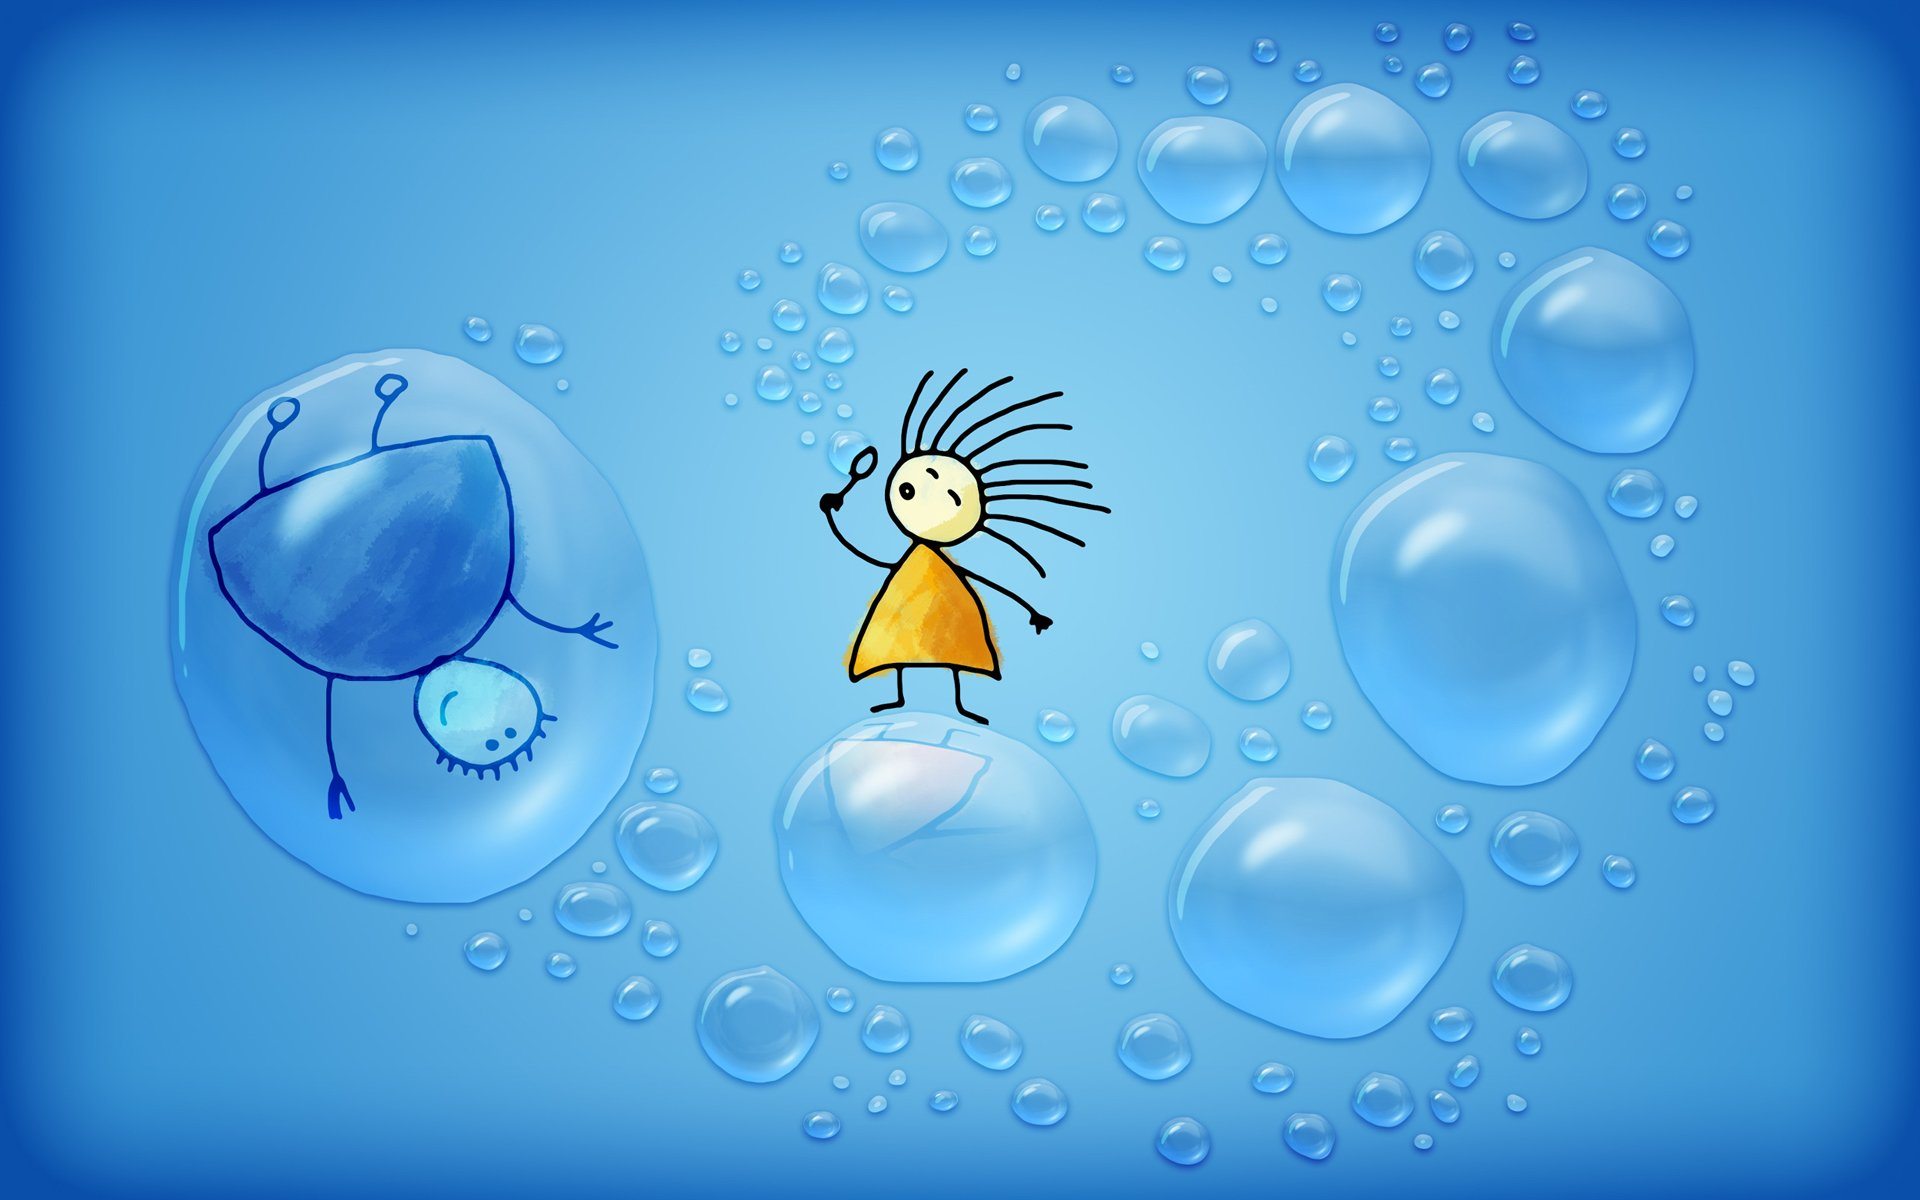 Bubbles cute animation HD wallpapers new animated desktop wallpapers 560